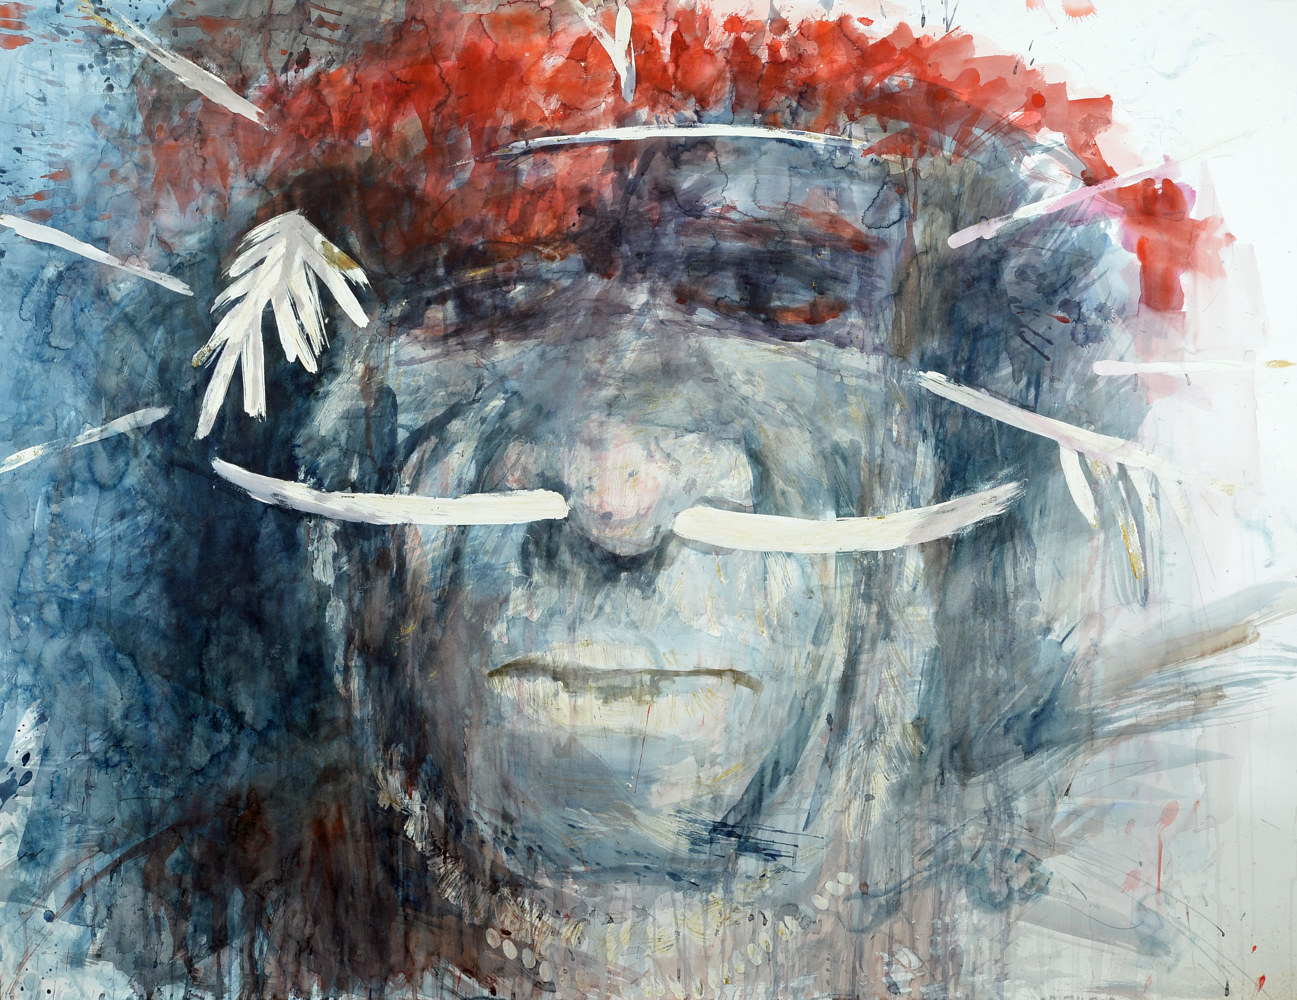 Watercolor Dani warrior 9 by Boudewijn Korsmit